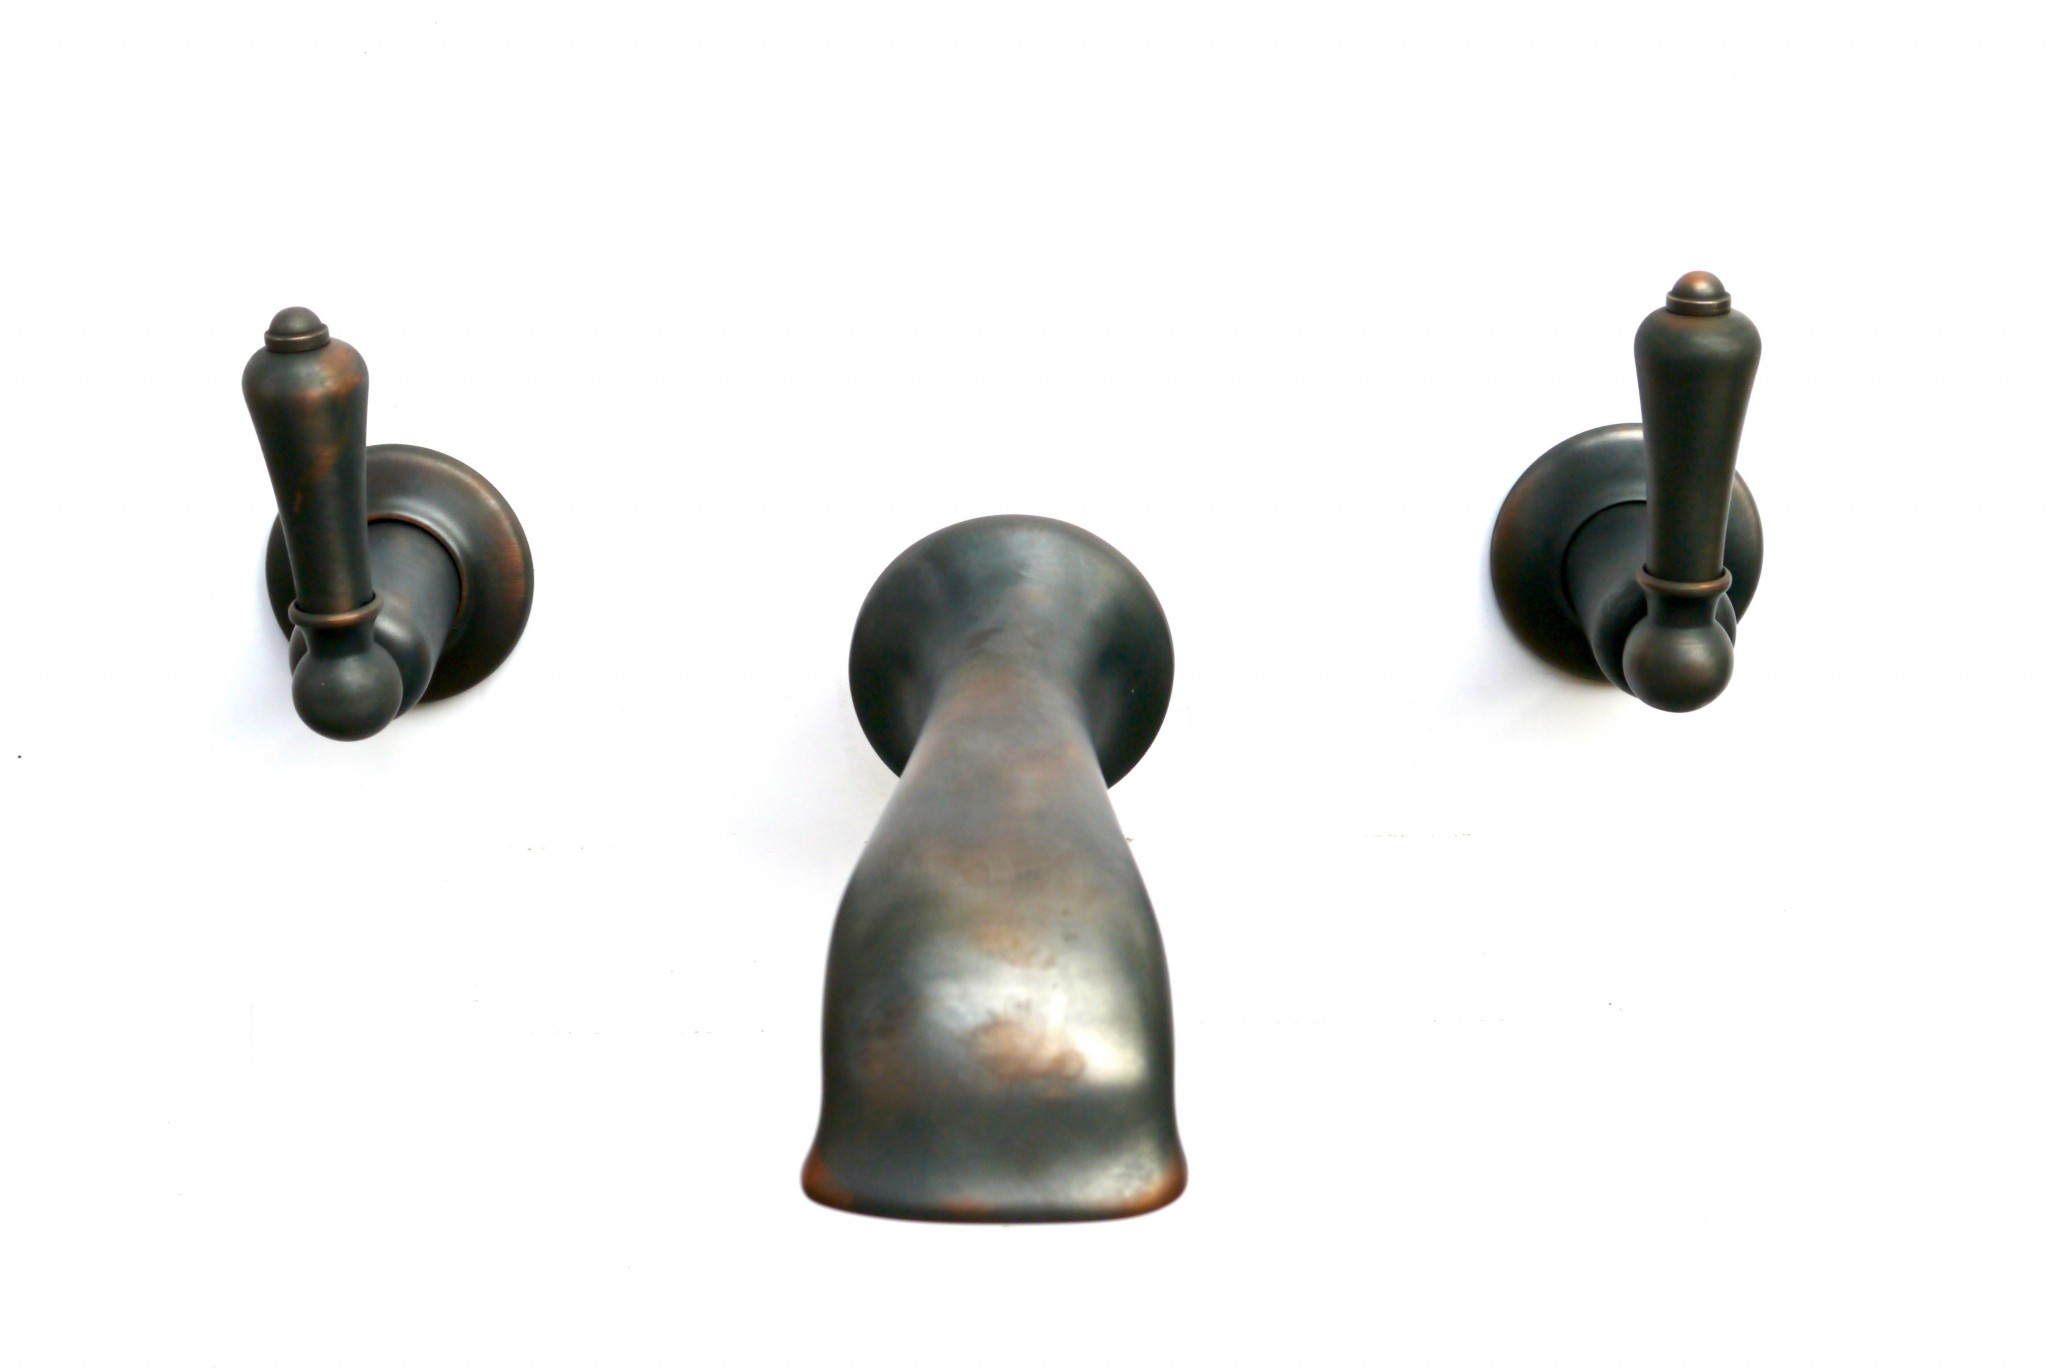 BSM 103 Wall Bath Filler in Weathered Copper finish with Metal Leavers